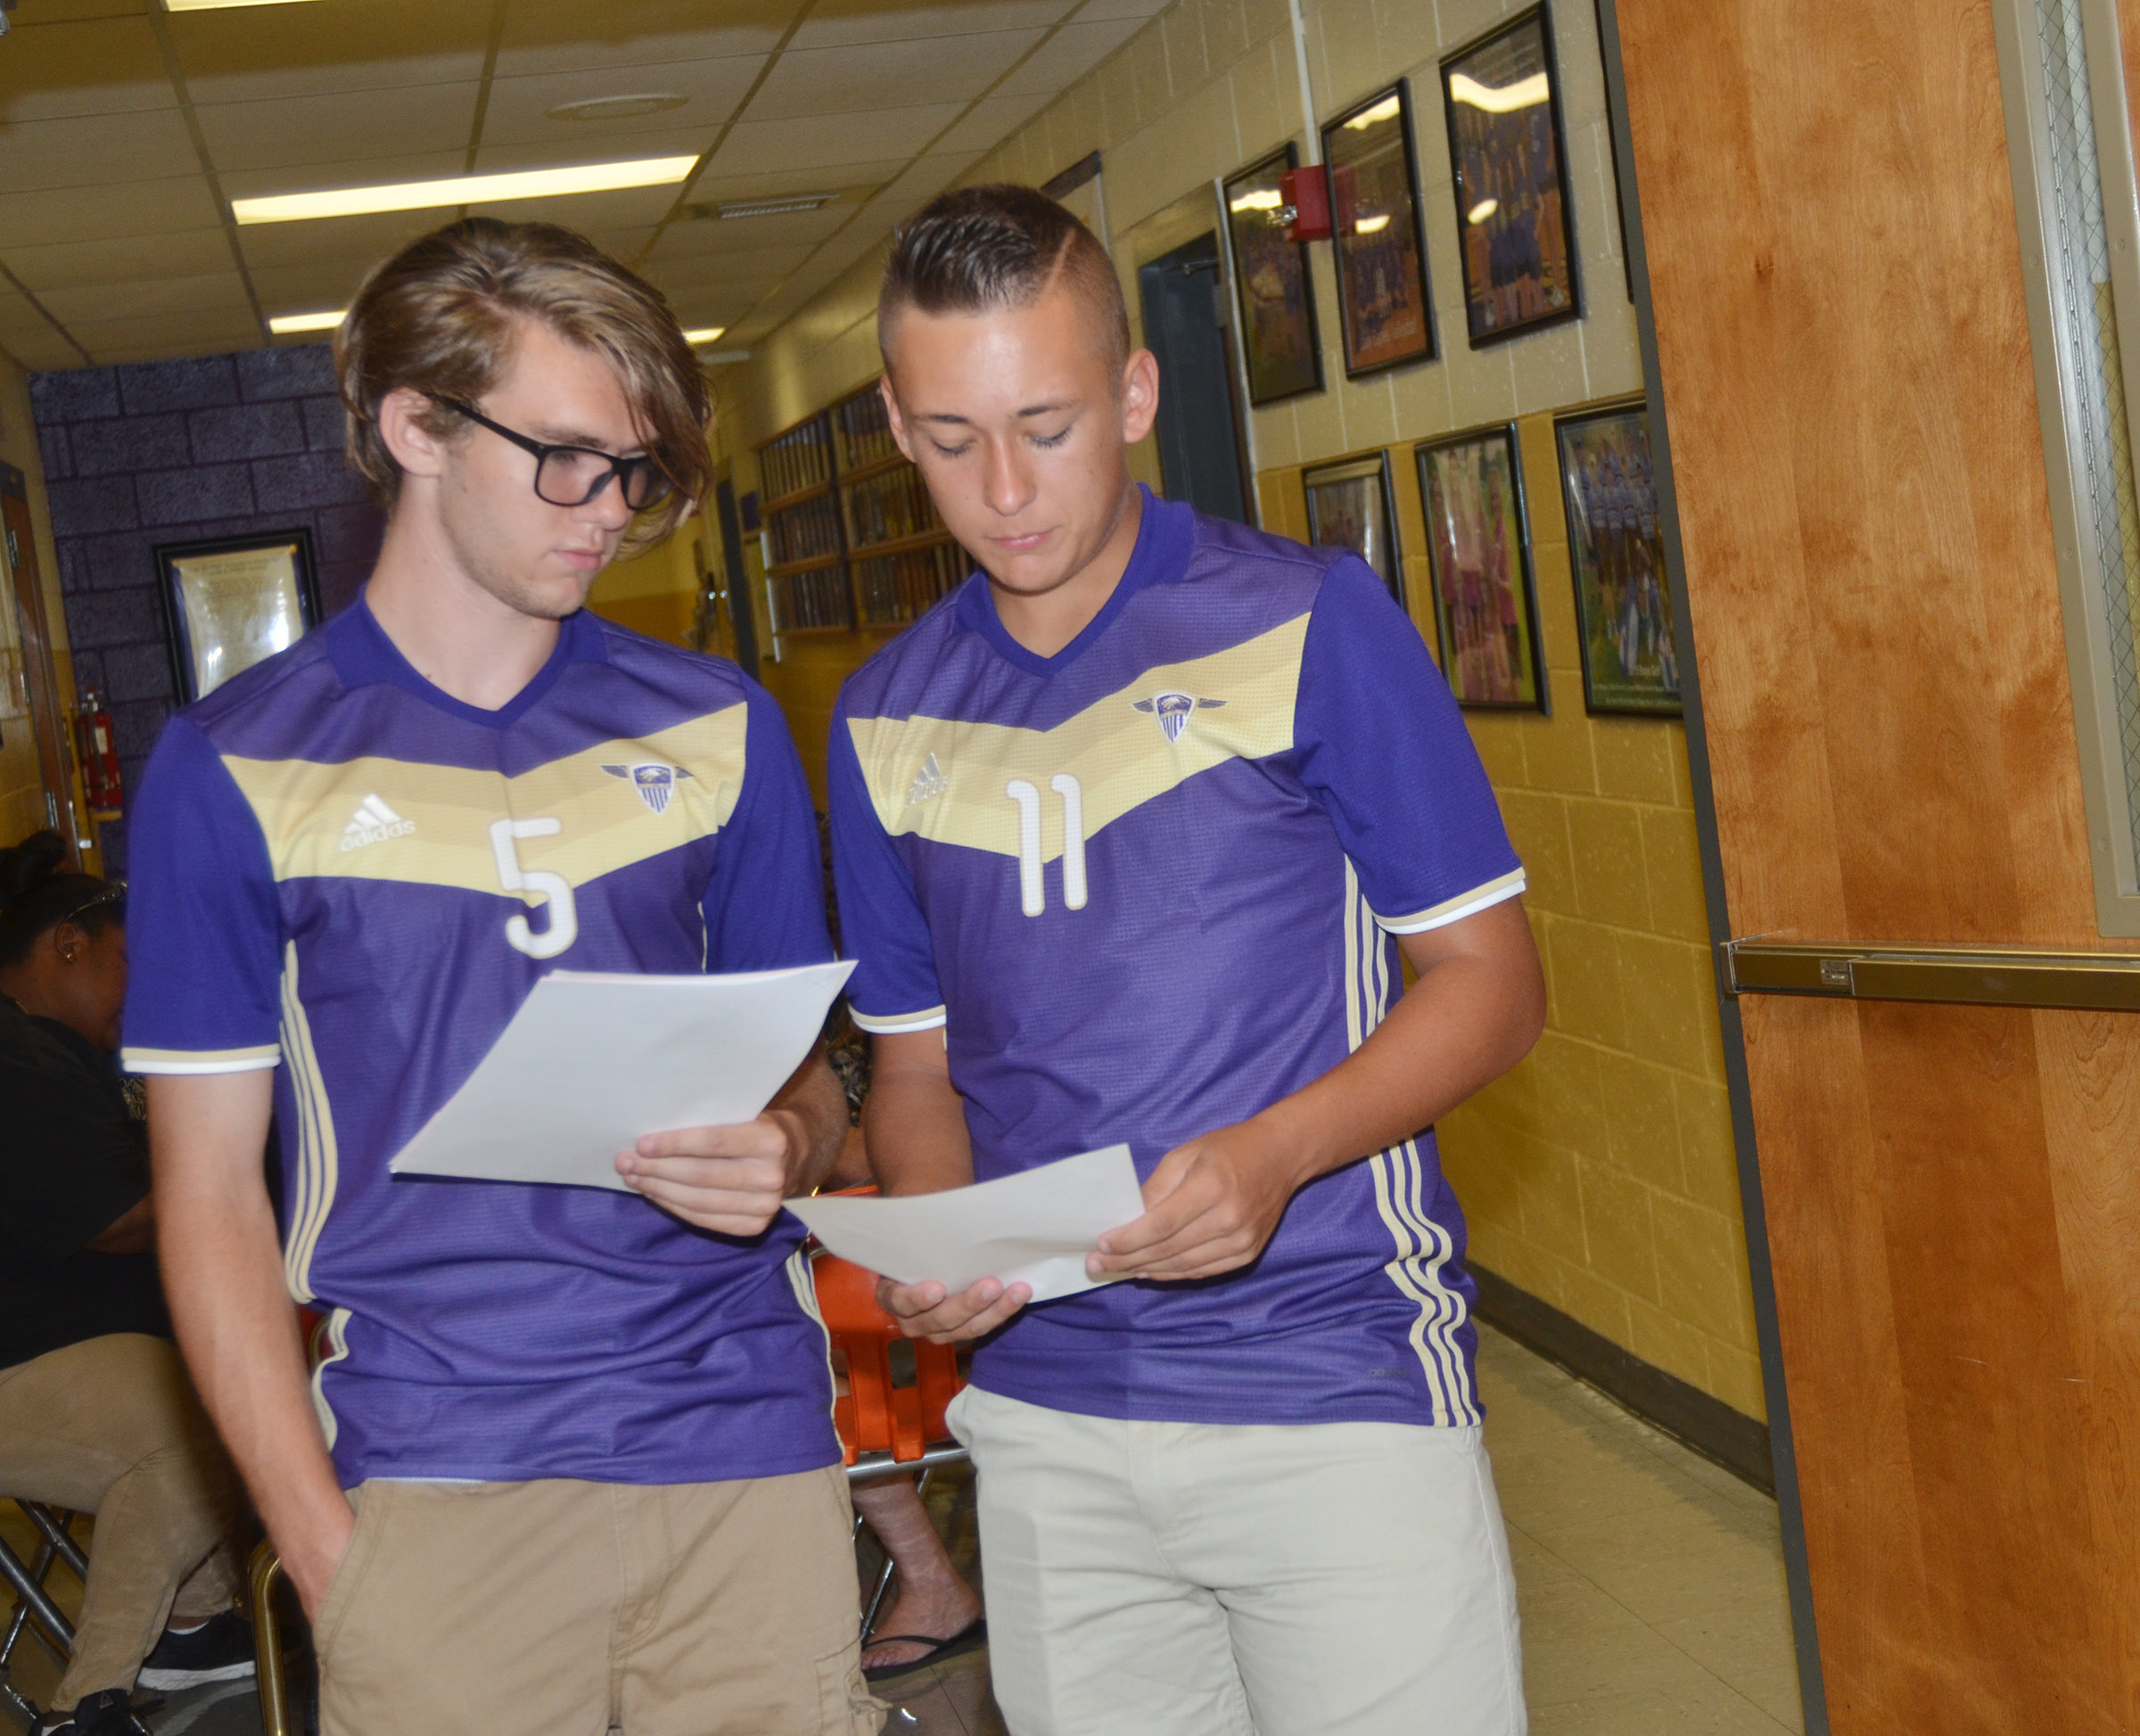 CHS seniors Christian Berry, at left, and Cody Davis compare their schedules.